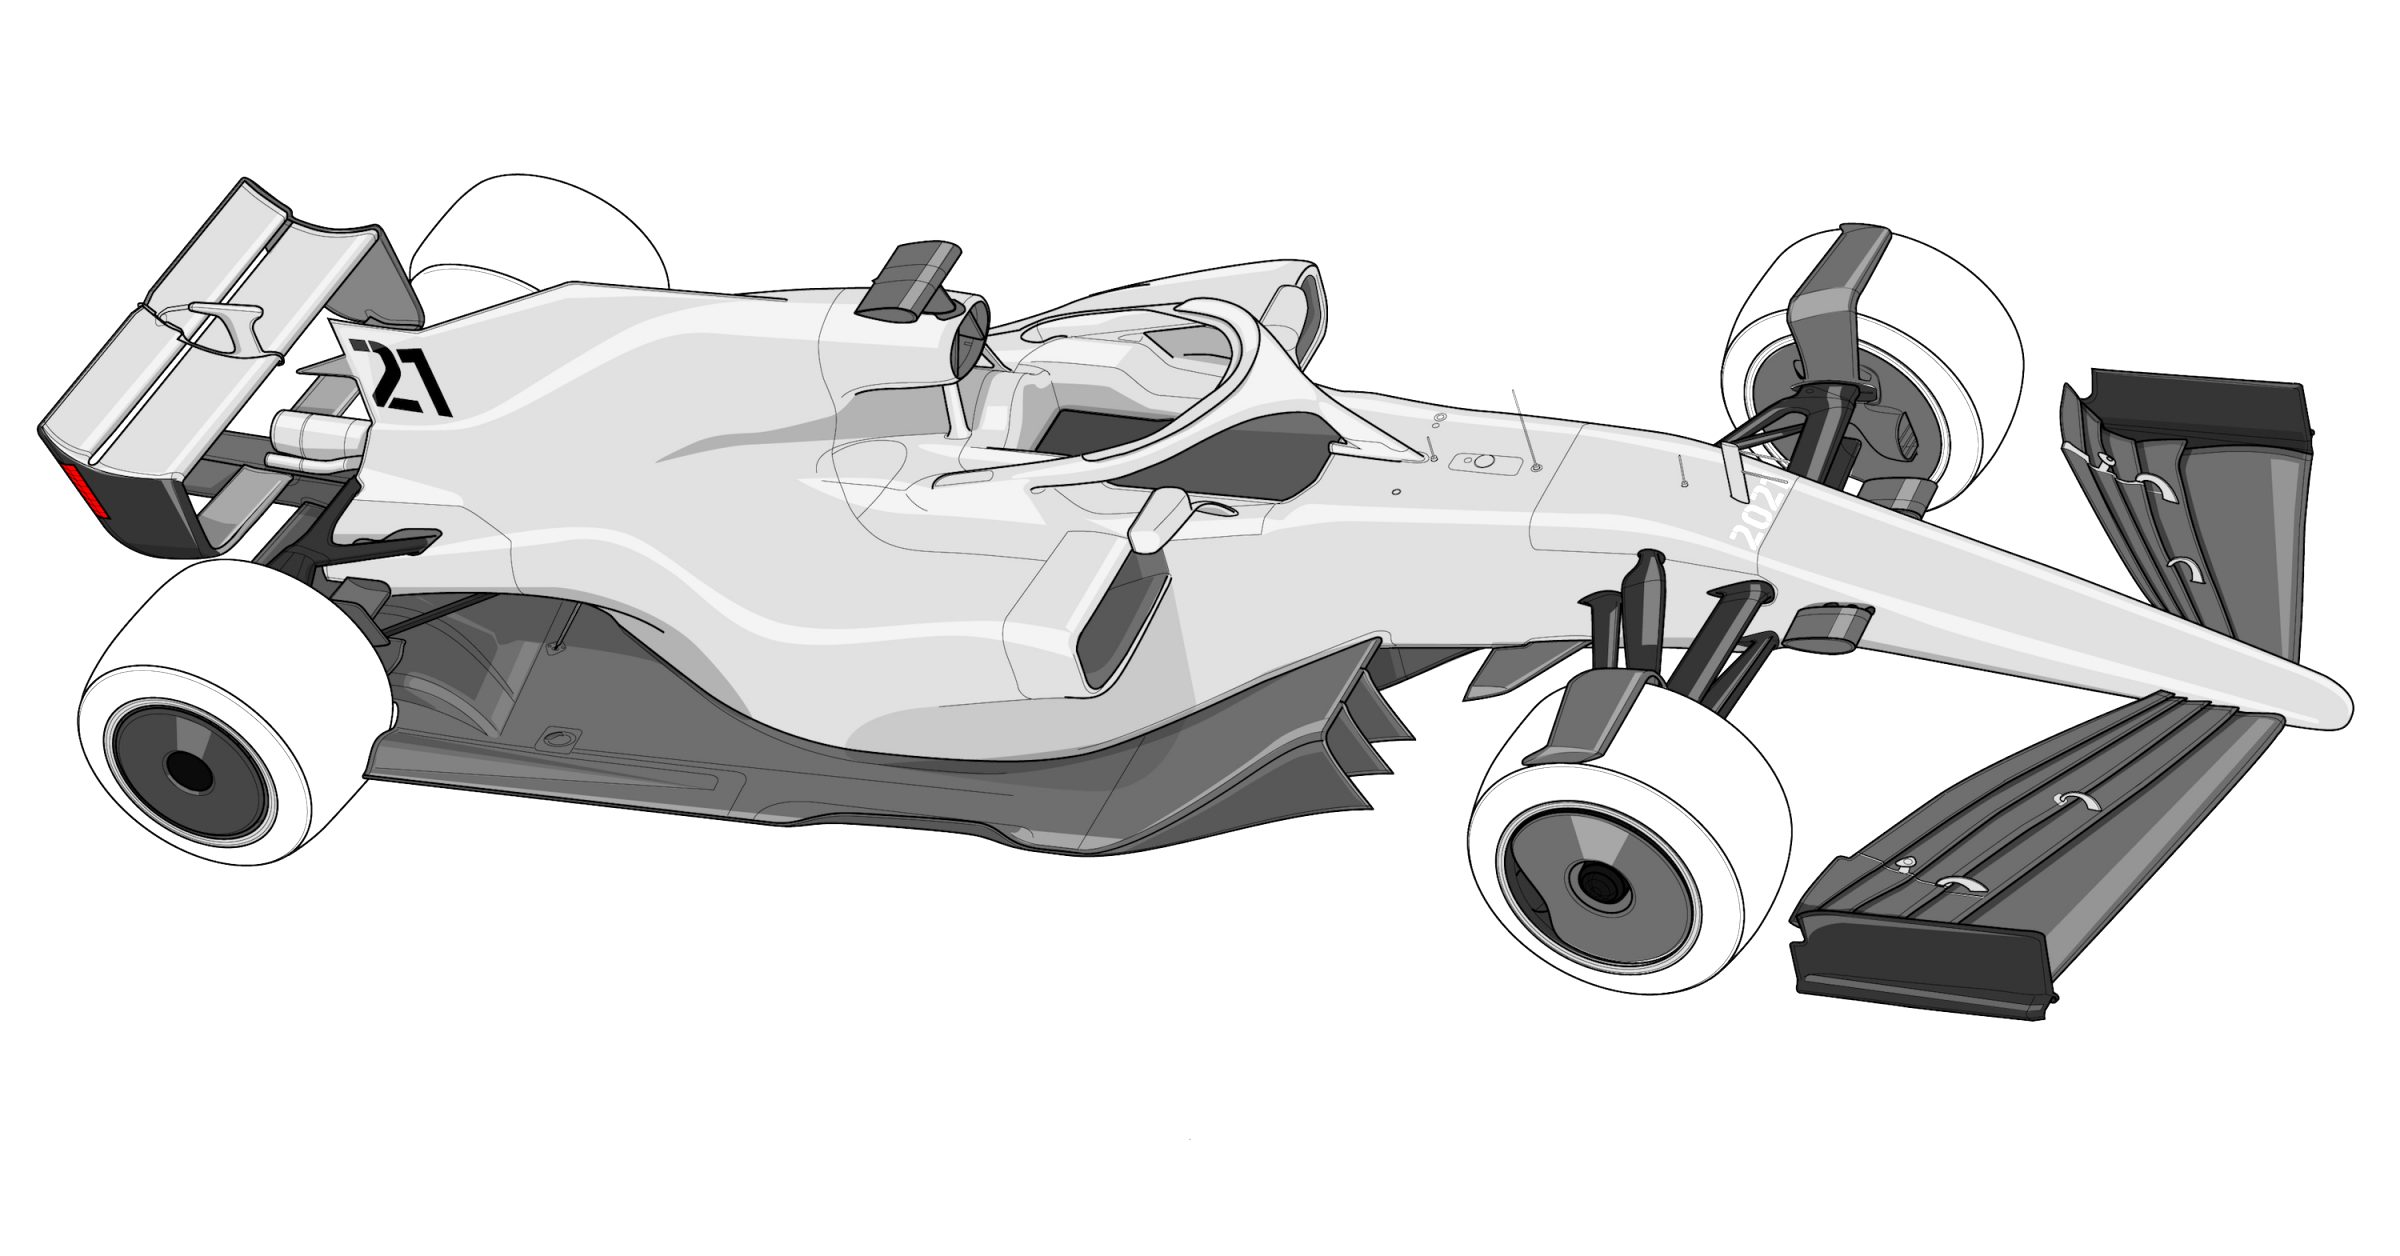 2021 mercedes f1 car specs Price and Release date